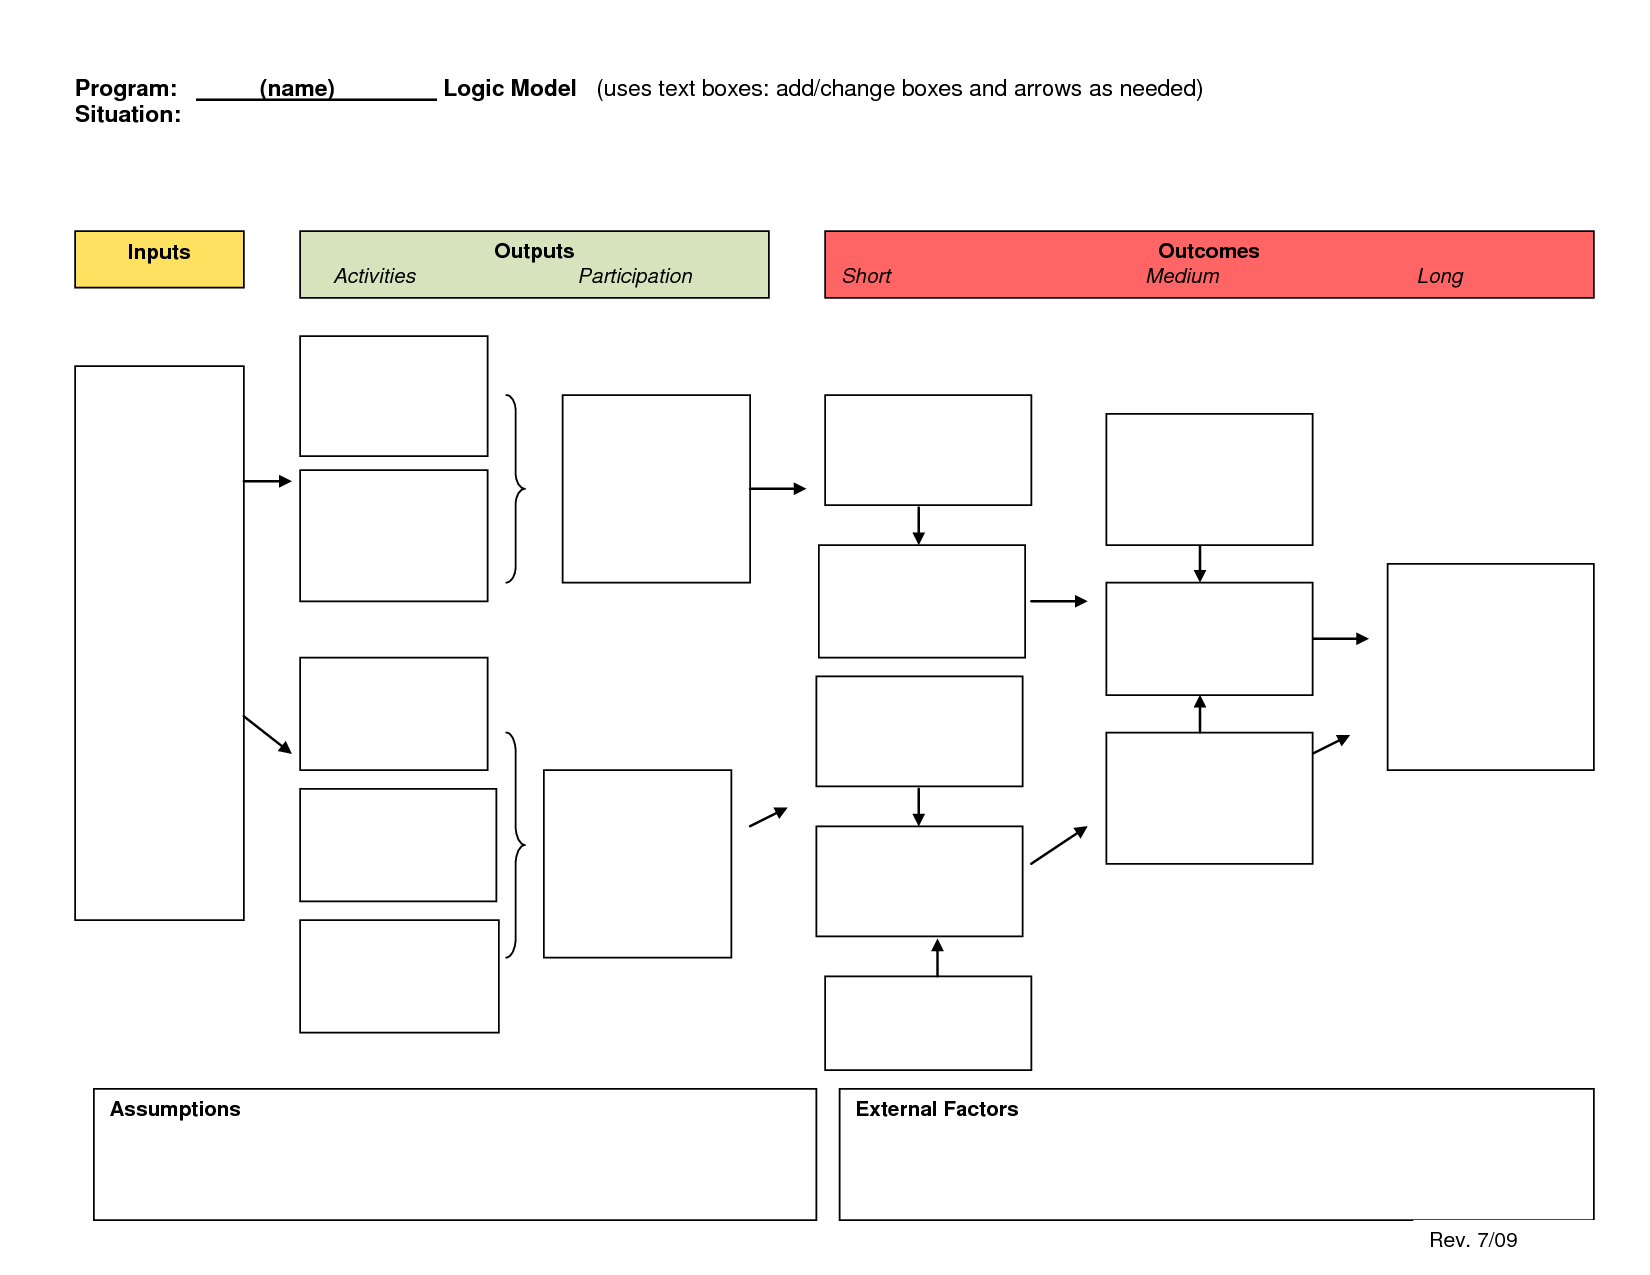 Logic Model Template Word Document – Kenna Regarding Logic Model Template Word